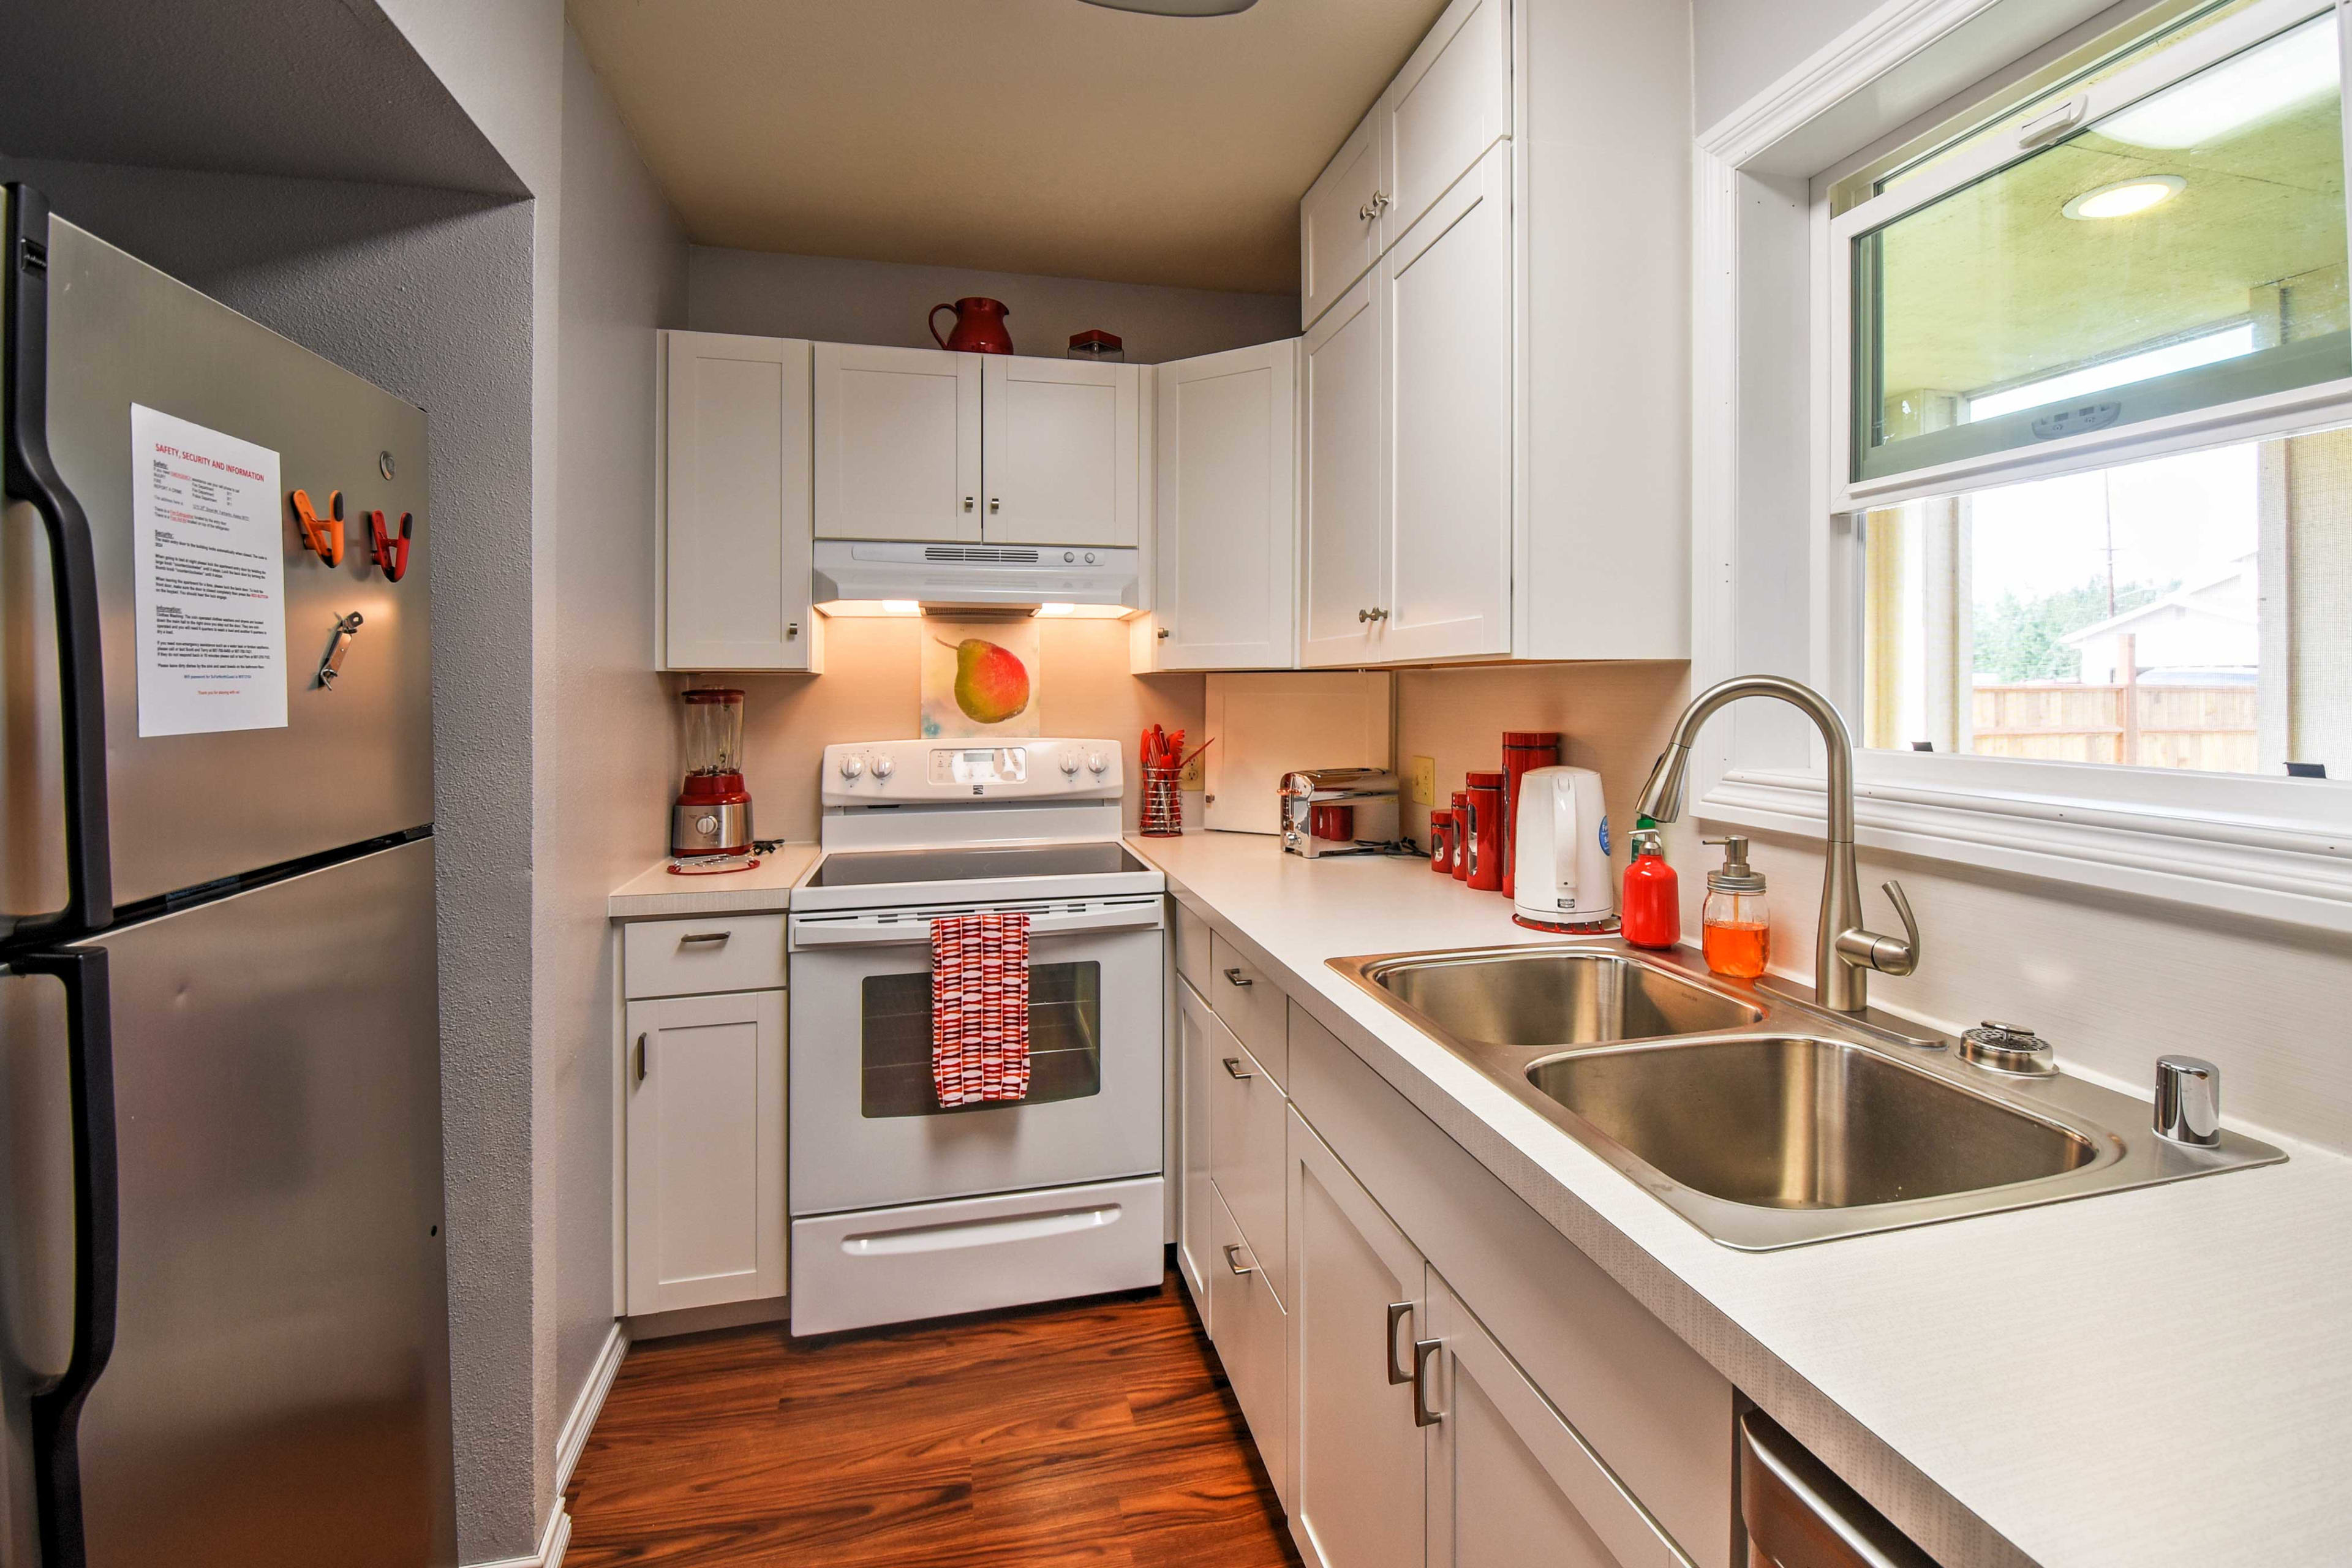 Use countertops and modern appliances while whipping up home-cooked treats!